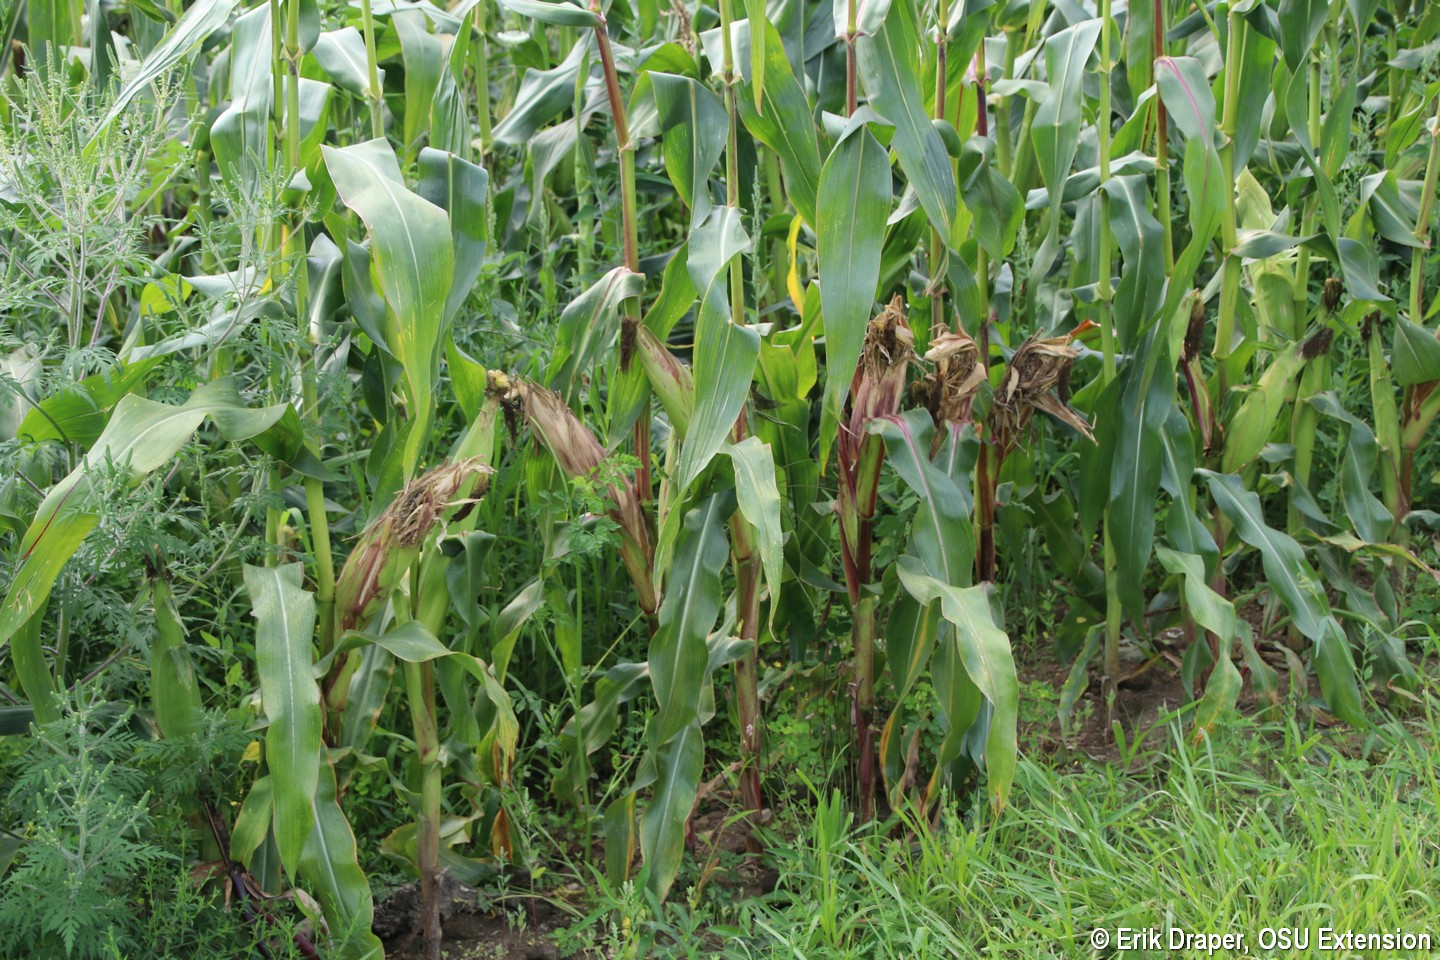 Damage evident on edge of field of sweet corn